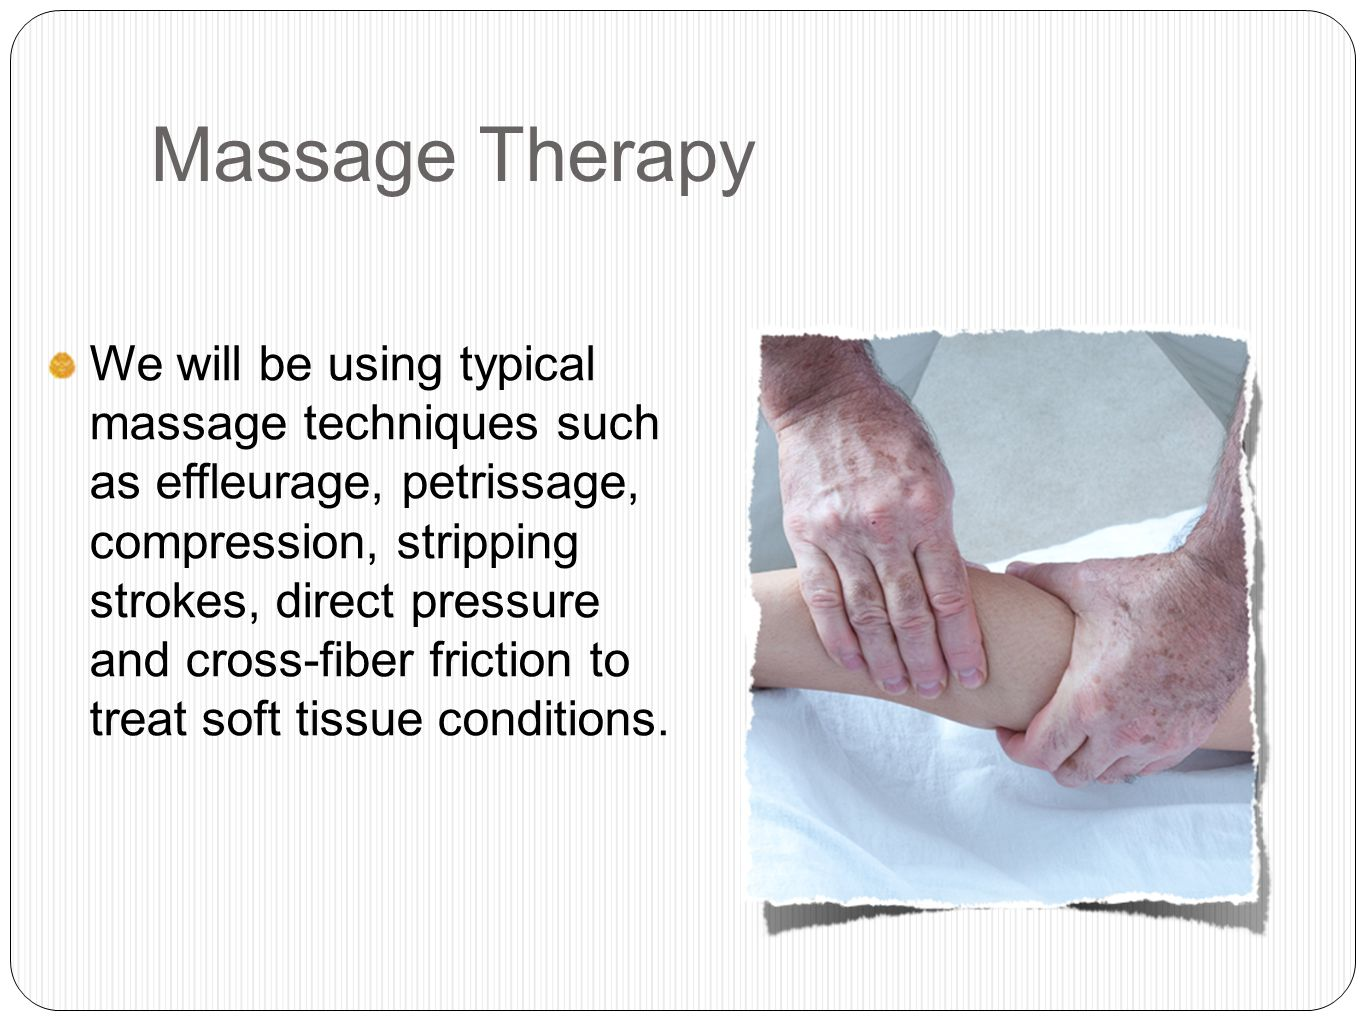 Massage Therapy We will be using typical massage techniques such as effleurage, petrissage, compression, stripping strokes, direct pressure and cross-fiber friction to treat soft tissue conditions.